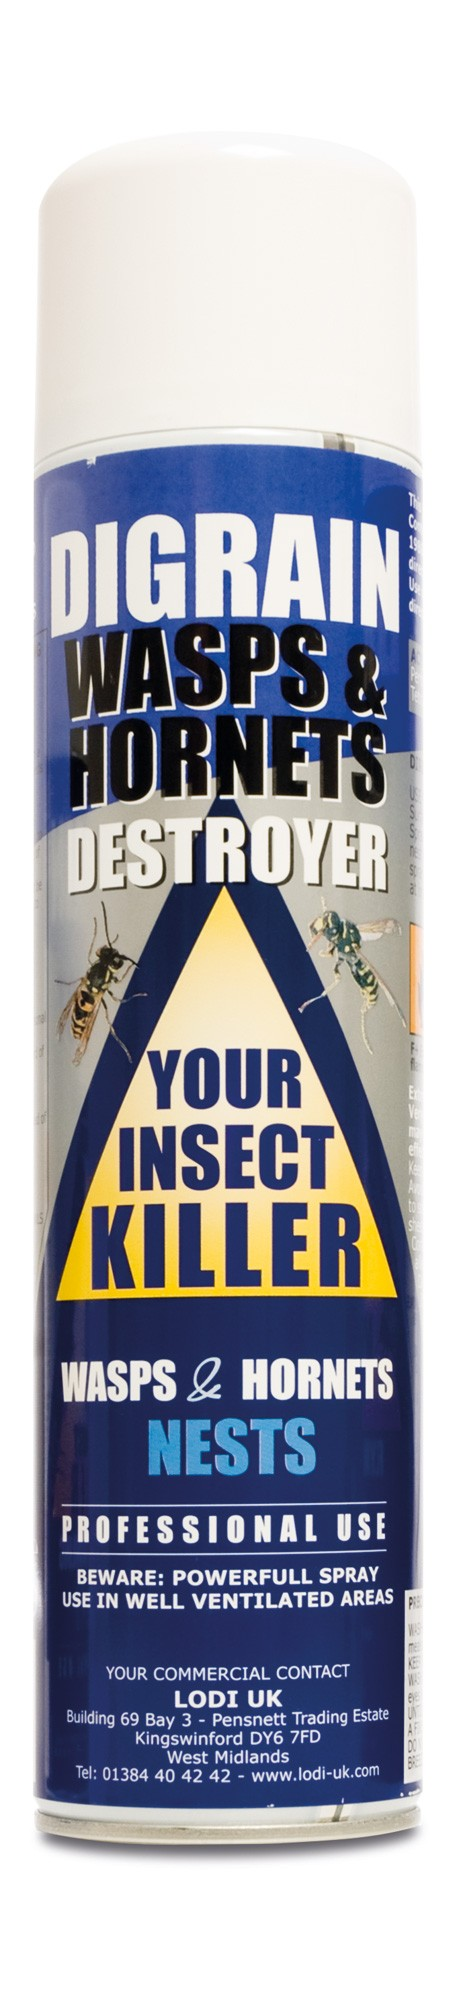 Digrain Wasp & Hornet 600ml